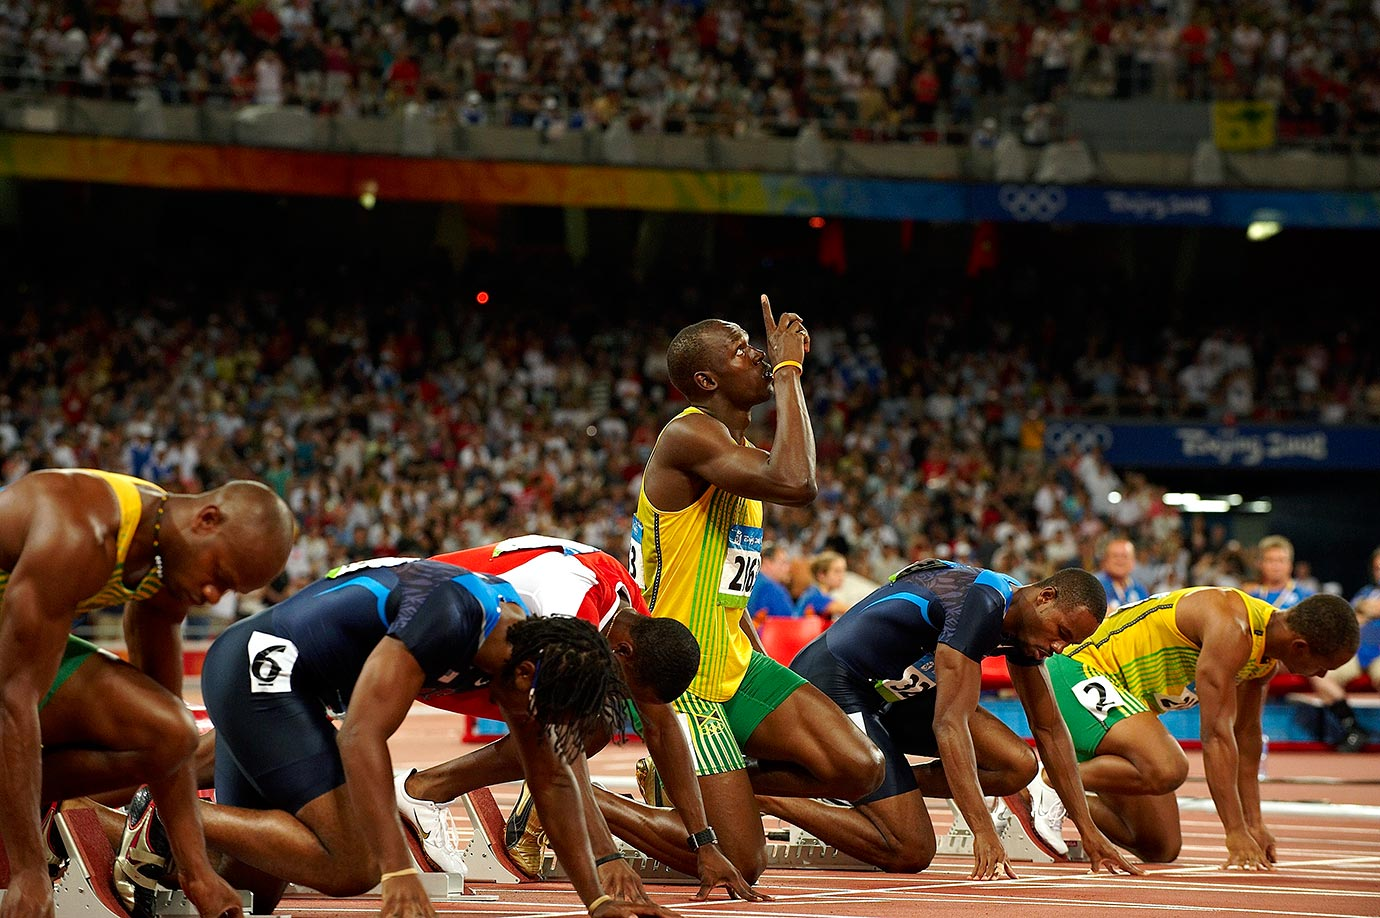 Usain Bolt looks up before the start of the 100m semifinals during the 2008 Summer Olympics in Beijing, China.